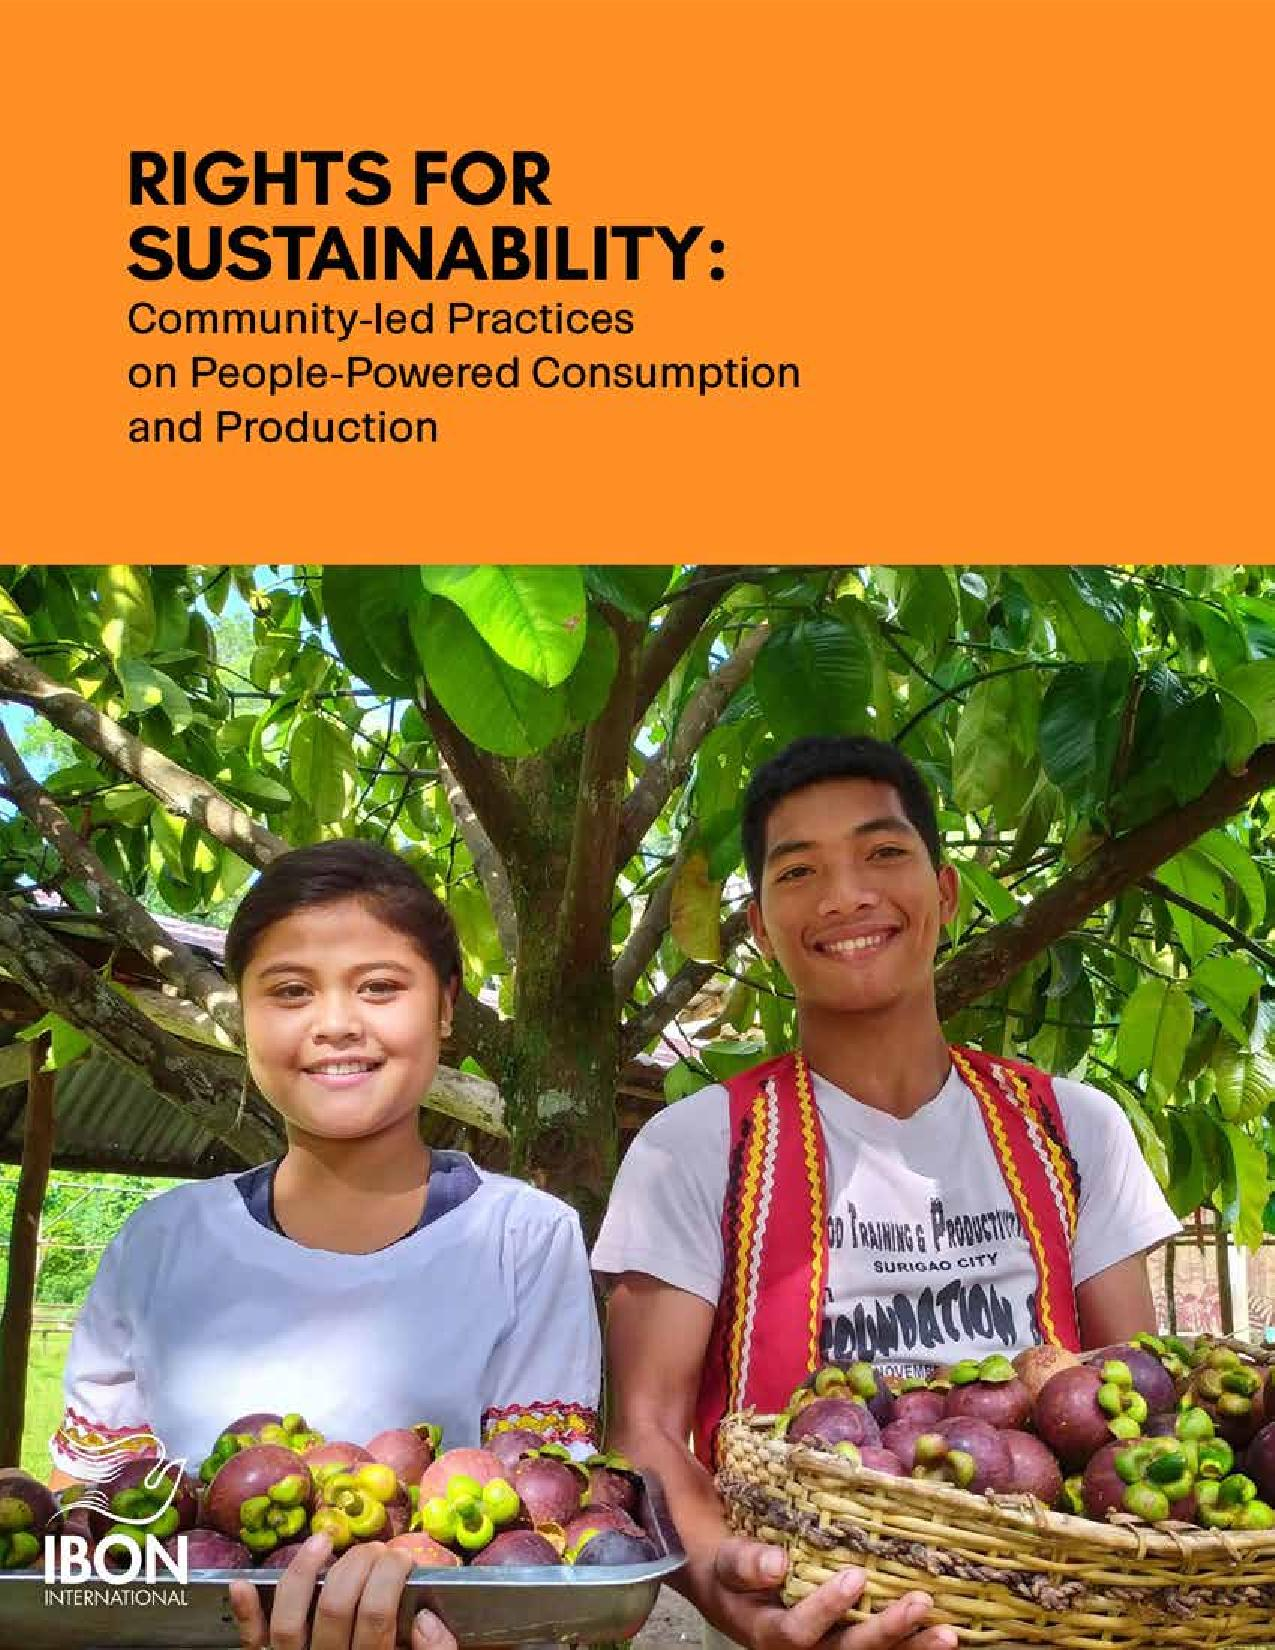 Rights for Sustainability: Community-led Practices on People-Powered Consumption and Production